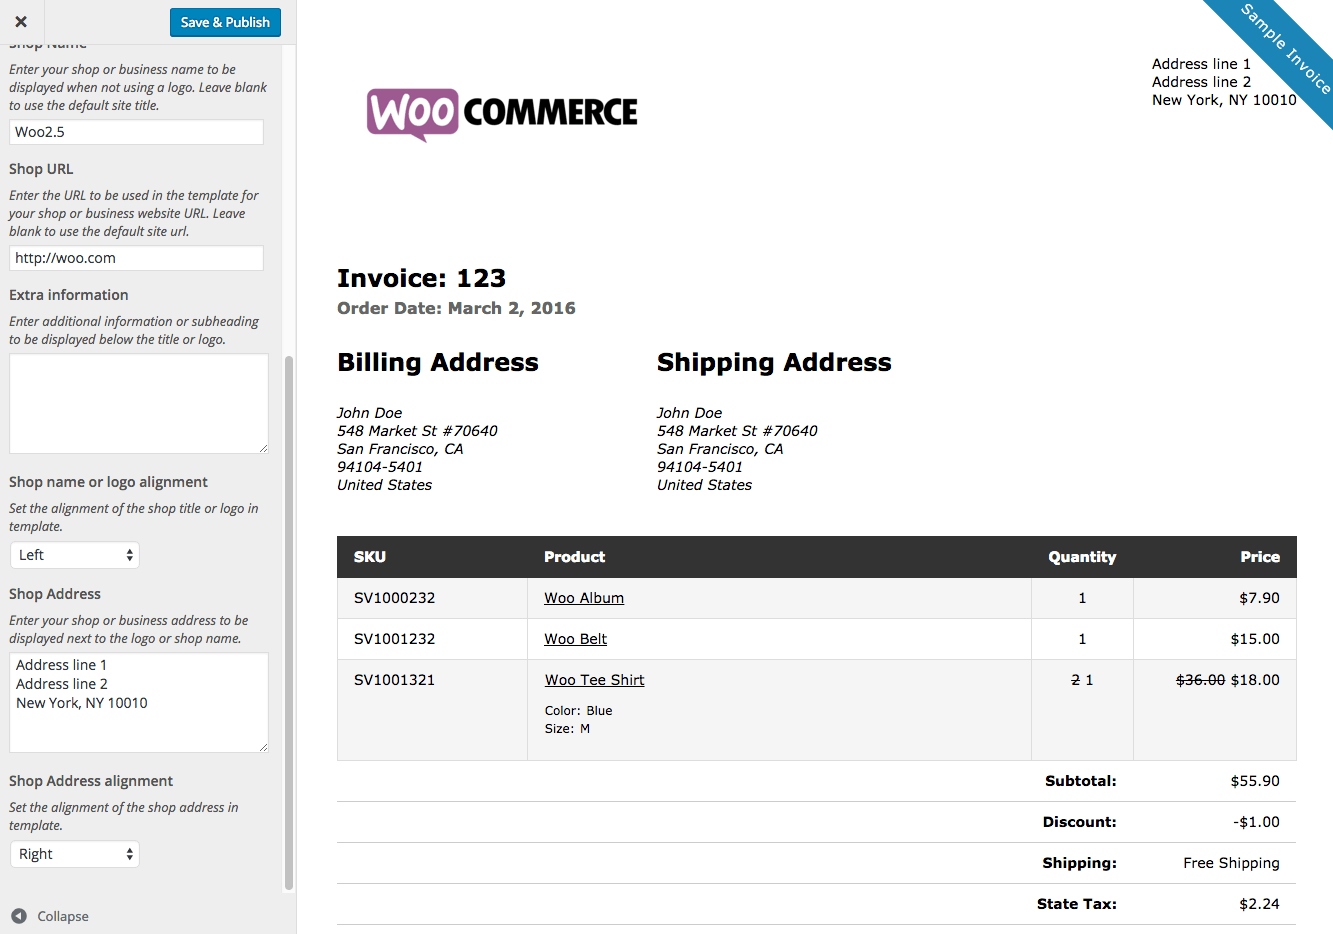 Amatospizzaus  Ravishing Woocommerce Print Invoices Amp Packing Lists  Woocommerce Docs With Remarkable Woocommerce Print Invoices  Packing Lists Customizer With Lovely Costco Receipts Online Also How To Make A Receipt In Word In Addition New Mexico Gross Receipts And Paid In Full Receipt Template As Well As American Airline Receipts Additionally Usmc Cif Gear Receipt From Docswoocommercecom With Amatospizzaus  Remarkable Woocommerce Print Invoices Amp Packing Lists  Woocommerce Docs With Lovely Woocommerce Print Invoices  Packing Lists Customizer And Ravishing Costco Receipts Online Also How To Make A Receipt In Word In Addition New Mexico Gross Receipts From Docswoocommercecom